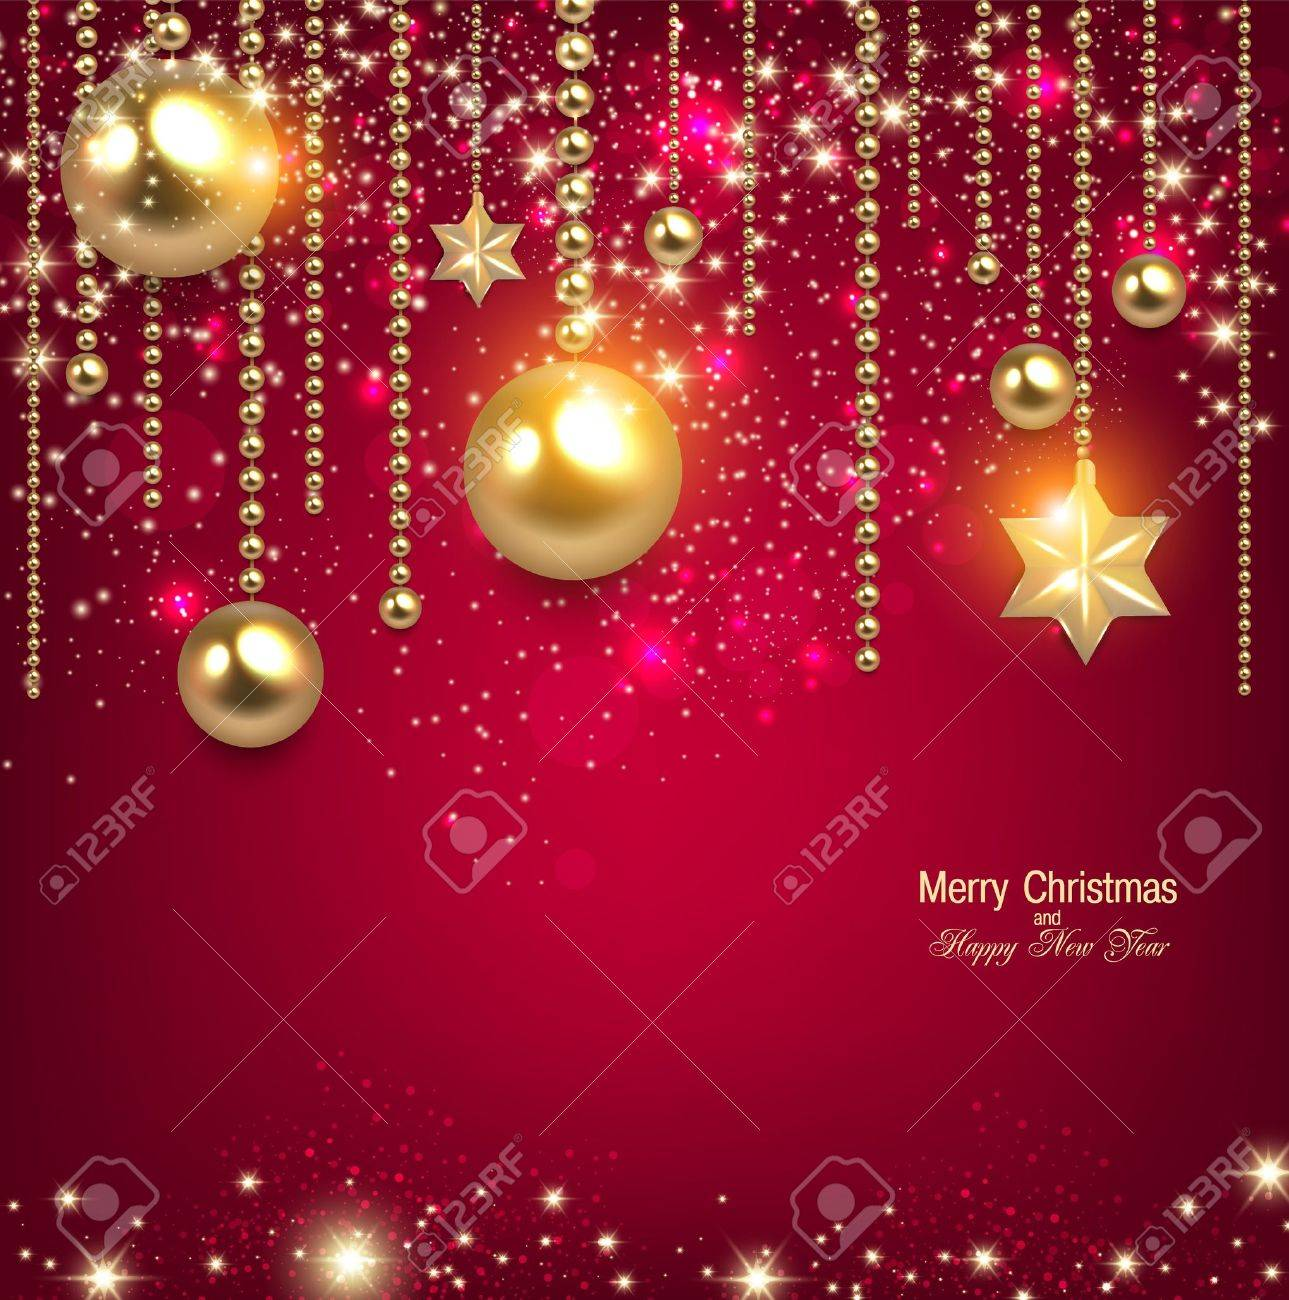 Elegant Christmas Background Hd.Elegant Christmas Background With Golden Baubles And Stars Vector